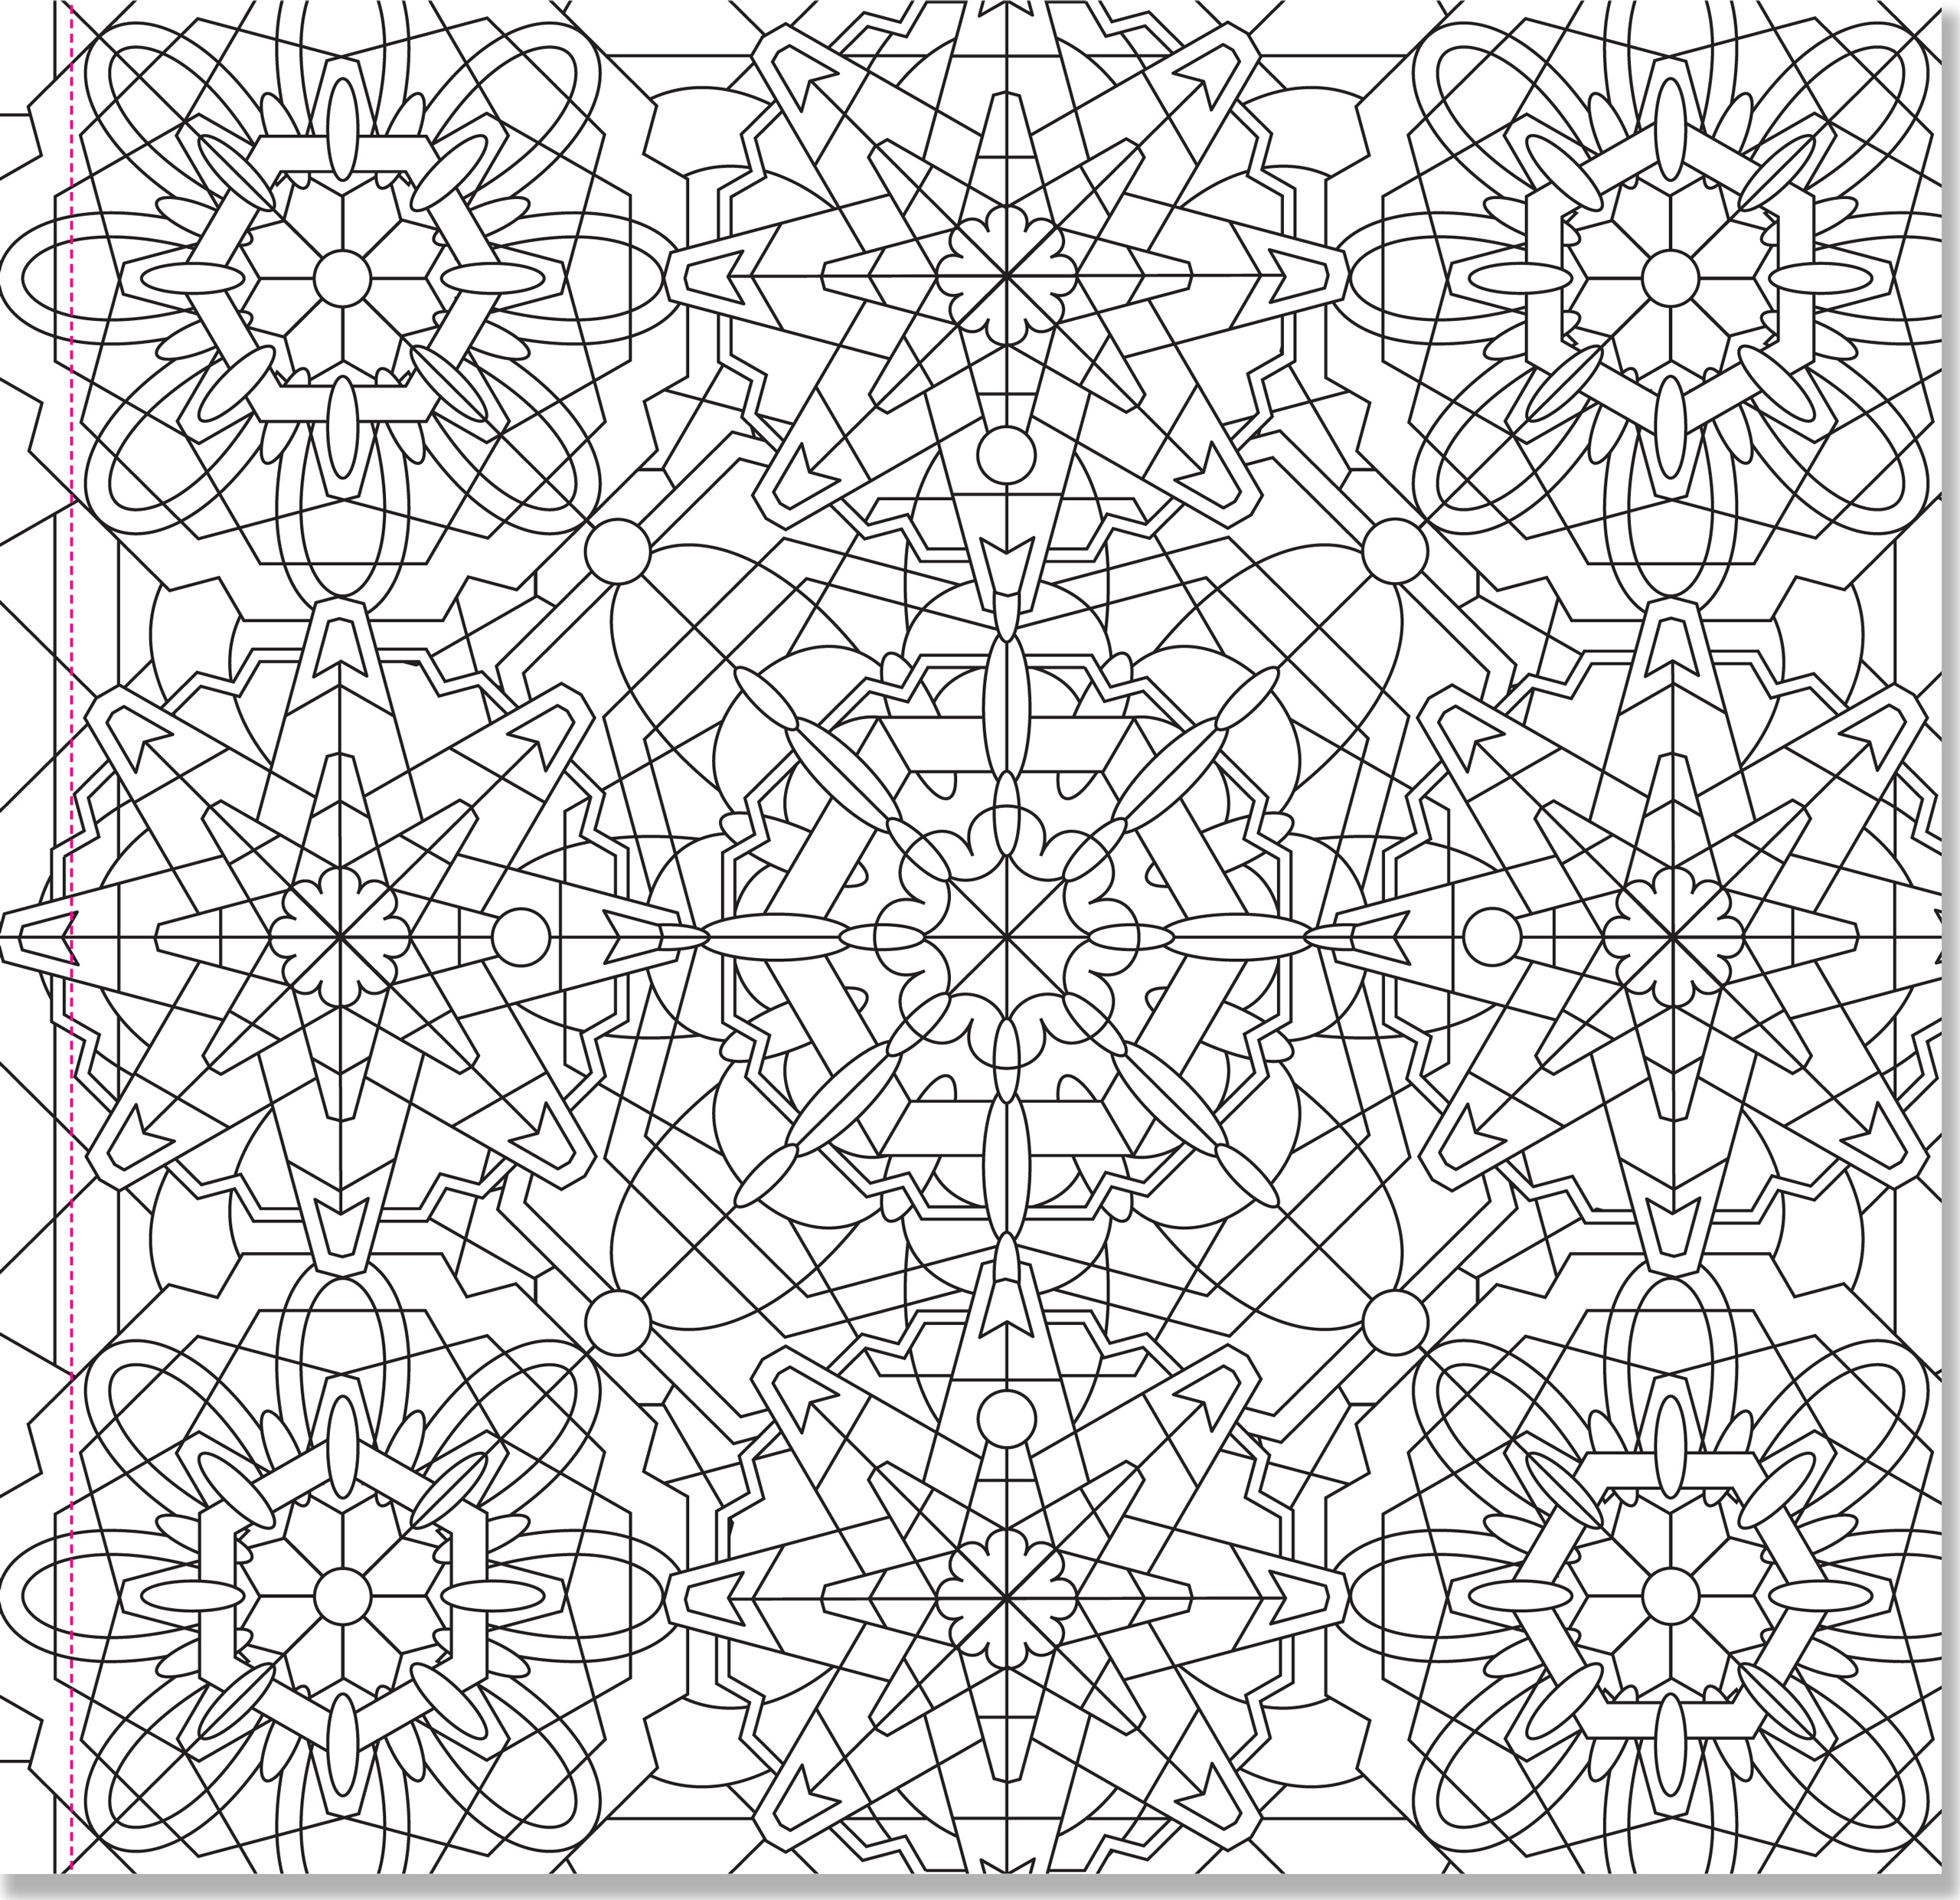 Color By Number Simple Giraffe Coloring Page For Preschoolers X moreover Mmwvuc further  moreover Halloween Coloring Bookmarks furthermore Mixosaurus Ichthyosaur Coloring Page. on number 13 coloring page